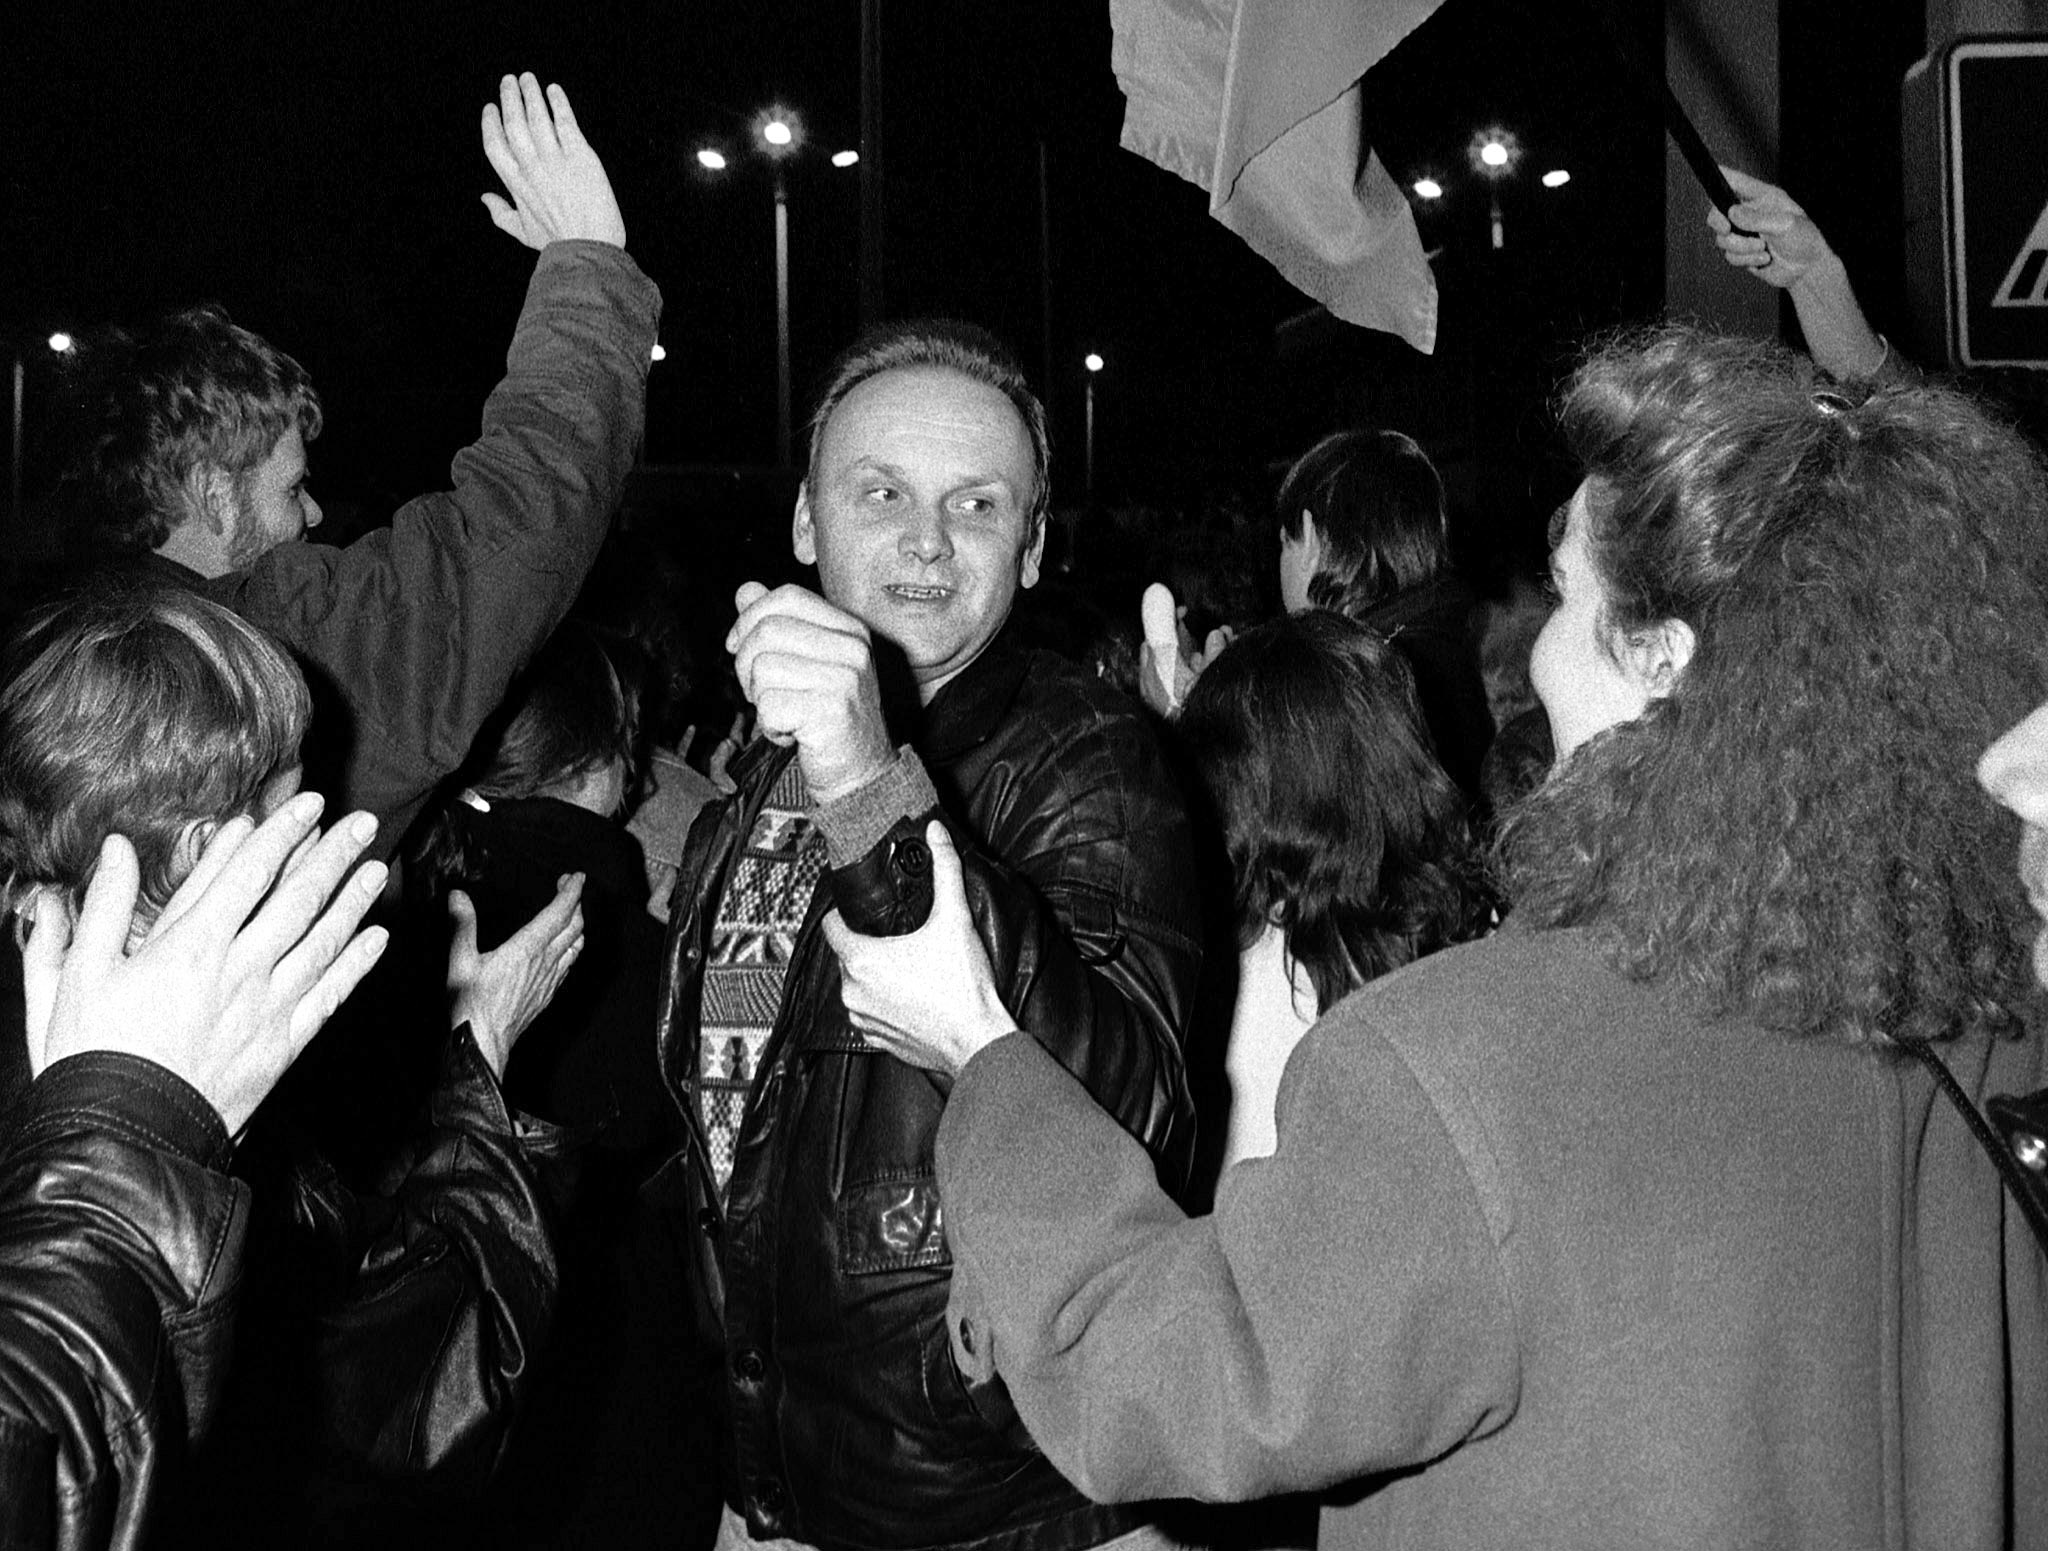 West Berliners welcome an East Berlin citizen crossing the border at the Allied checkpoint Charlie. (Reuters file)